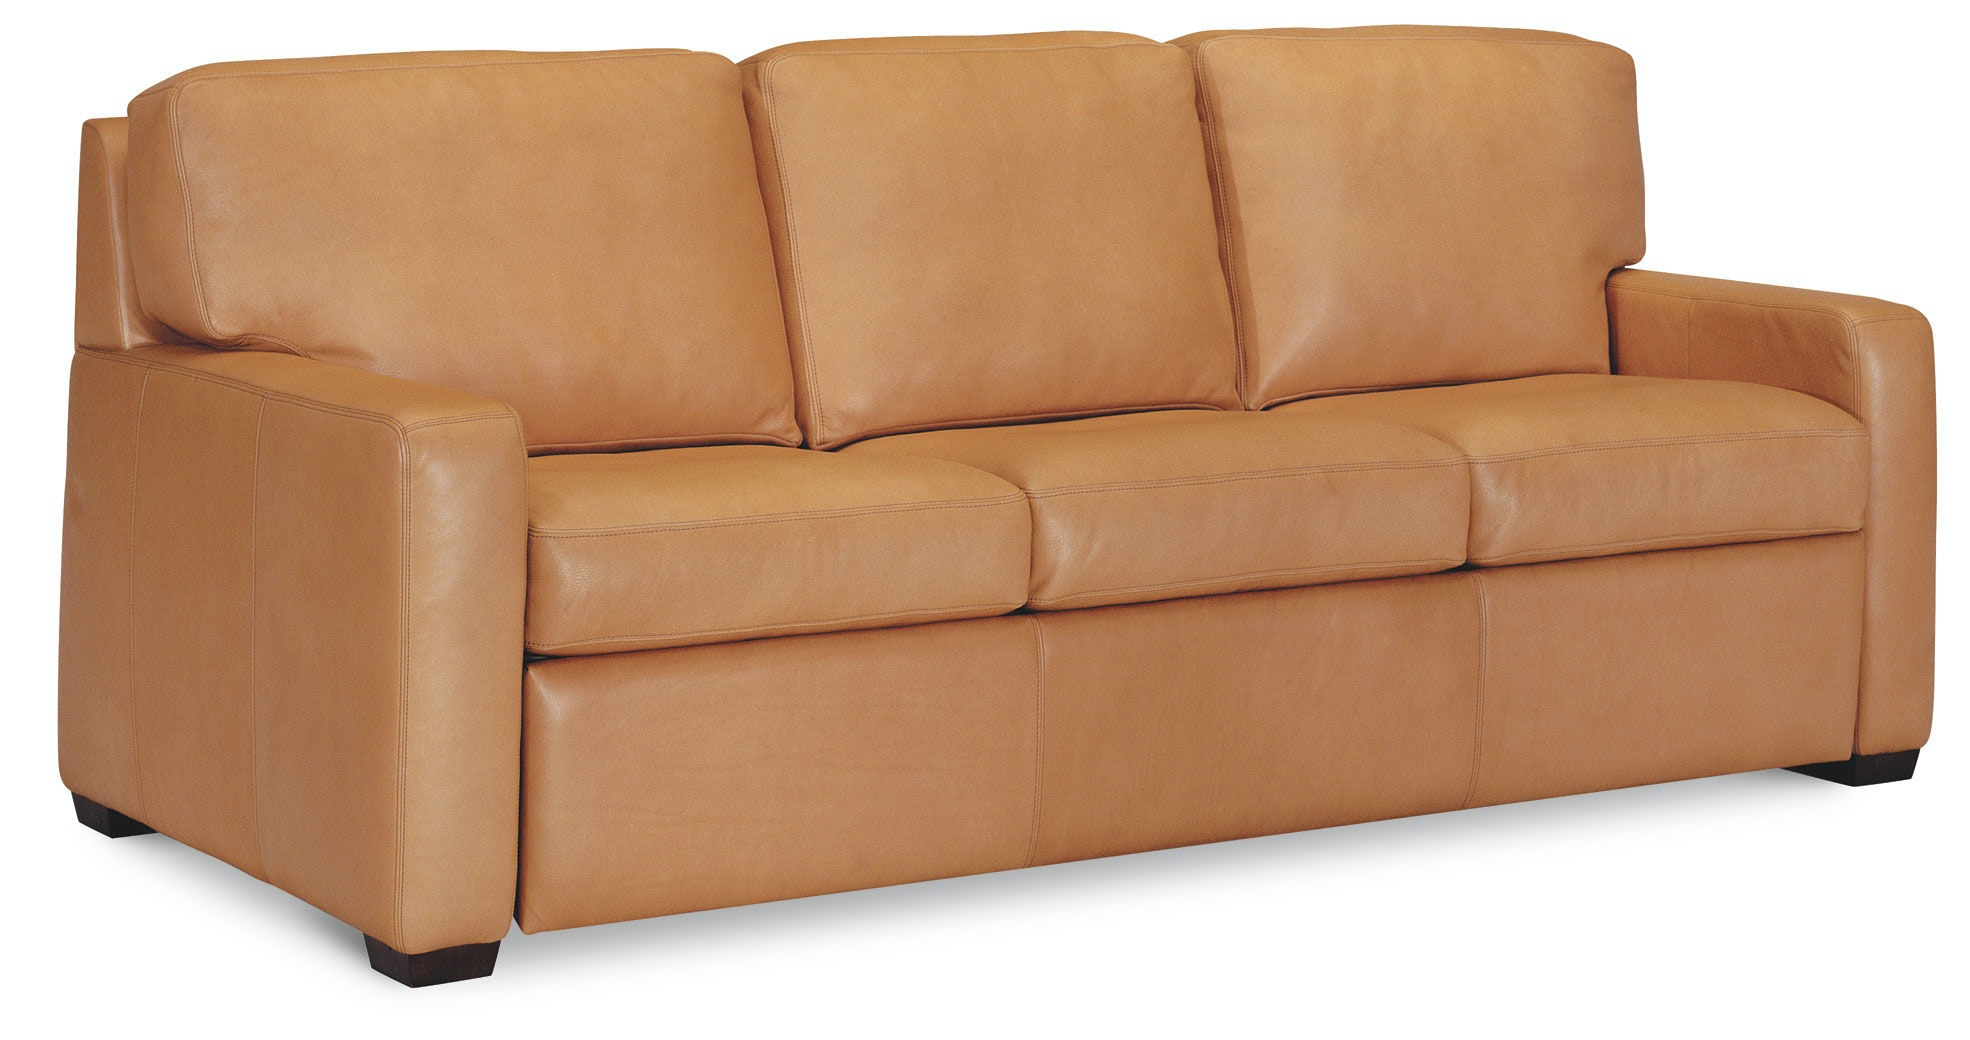 extra firm sofas ito sofa wall bed system american leather living room three cushion csn so3 st